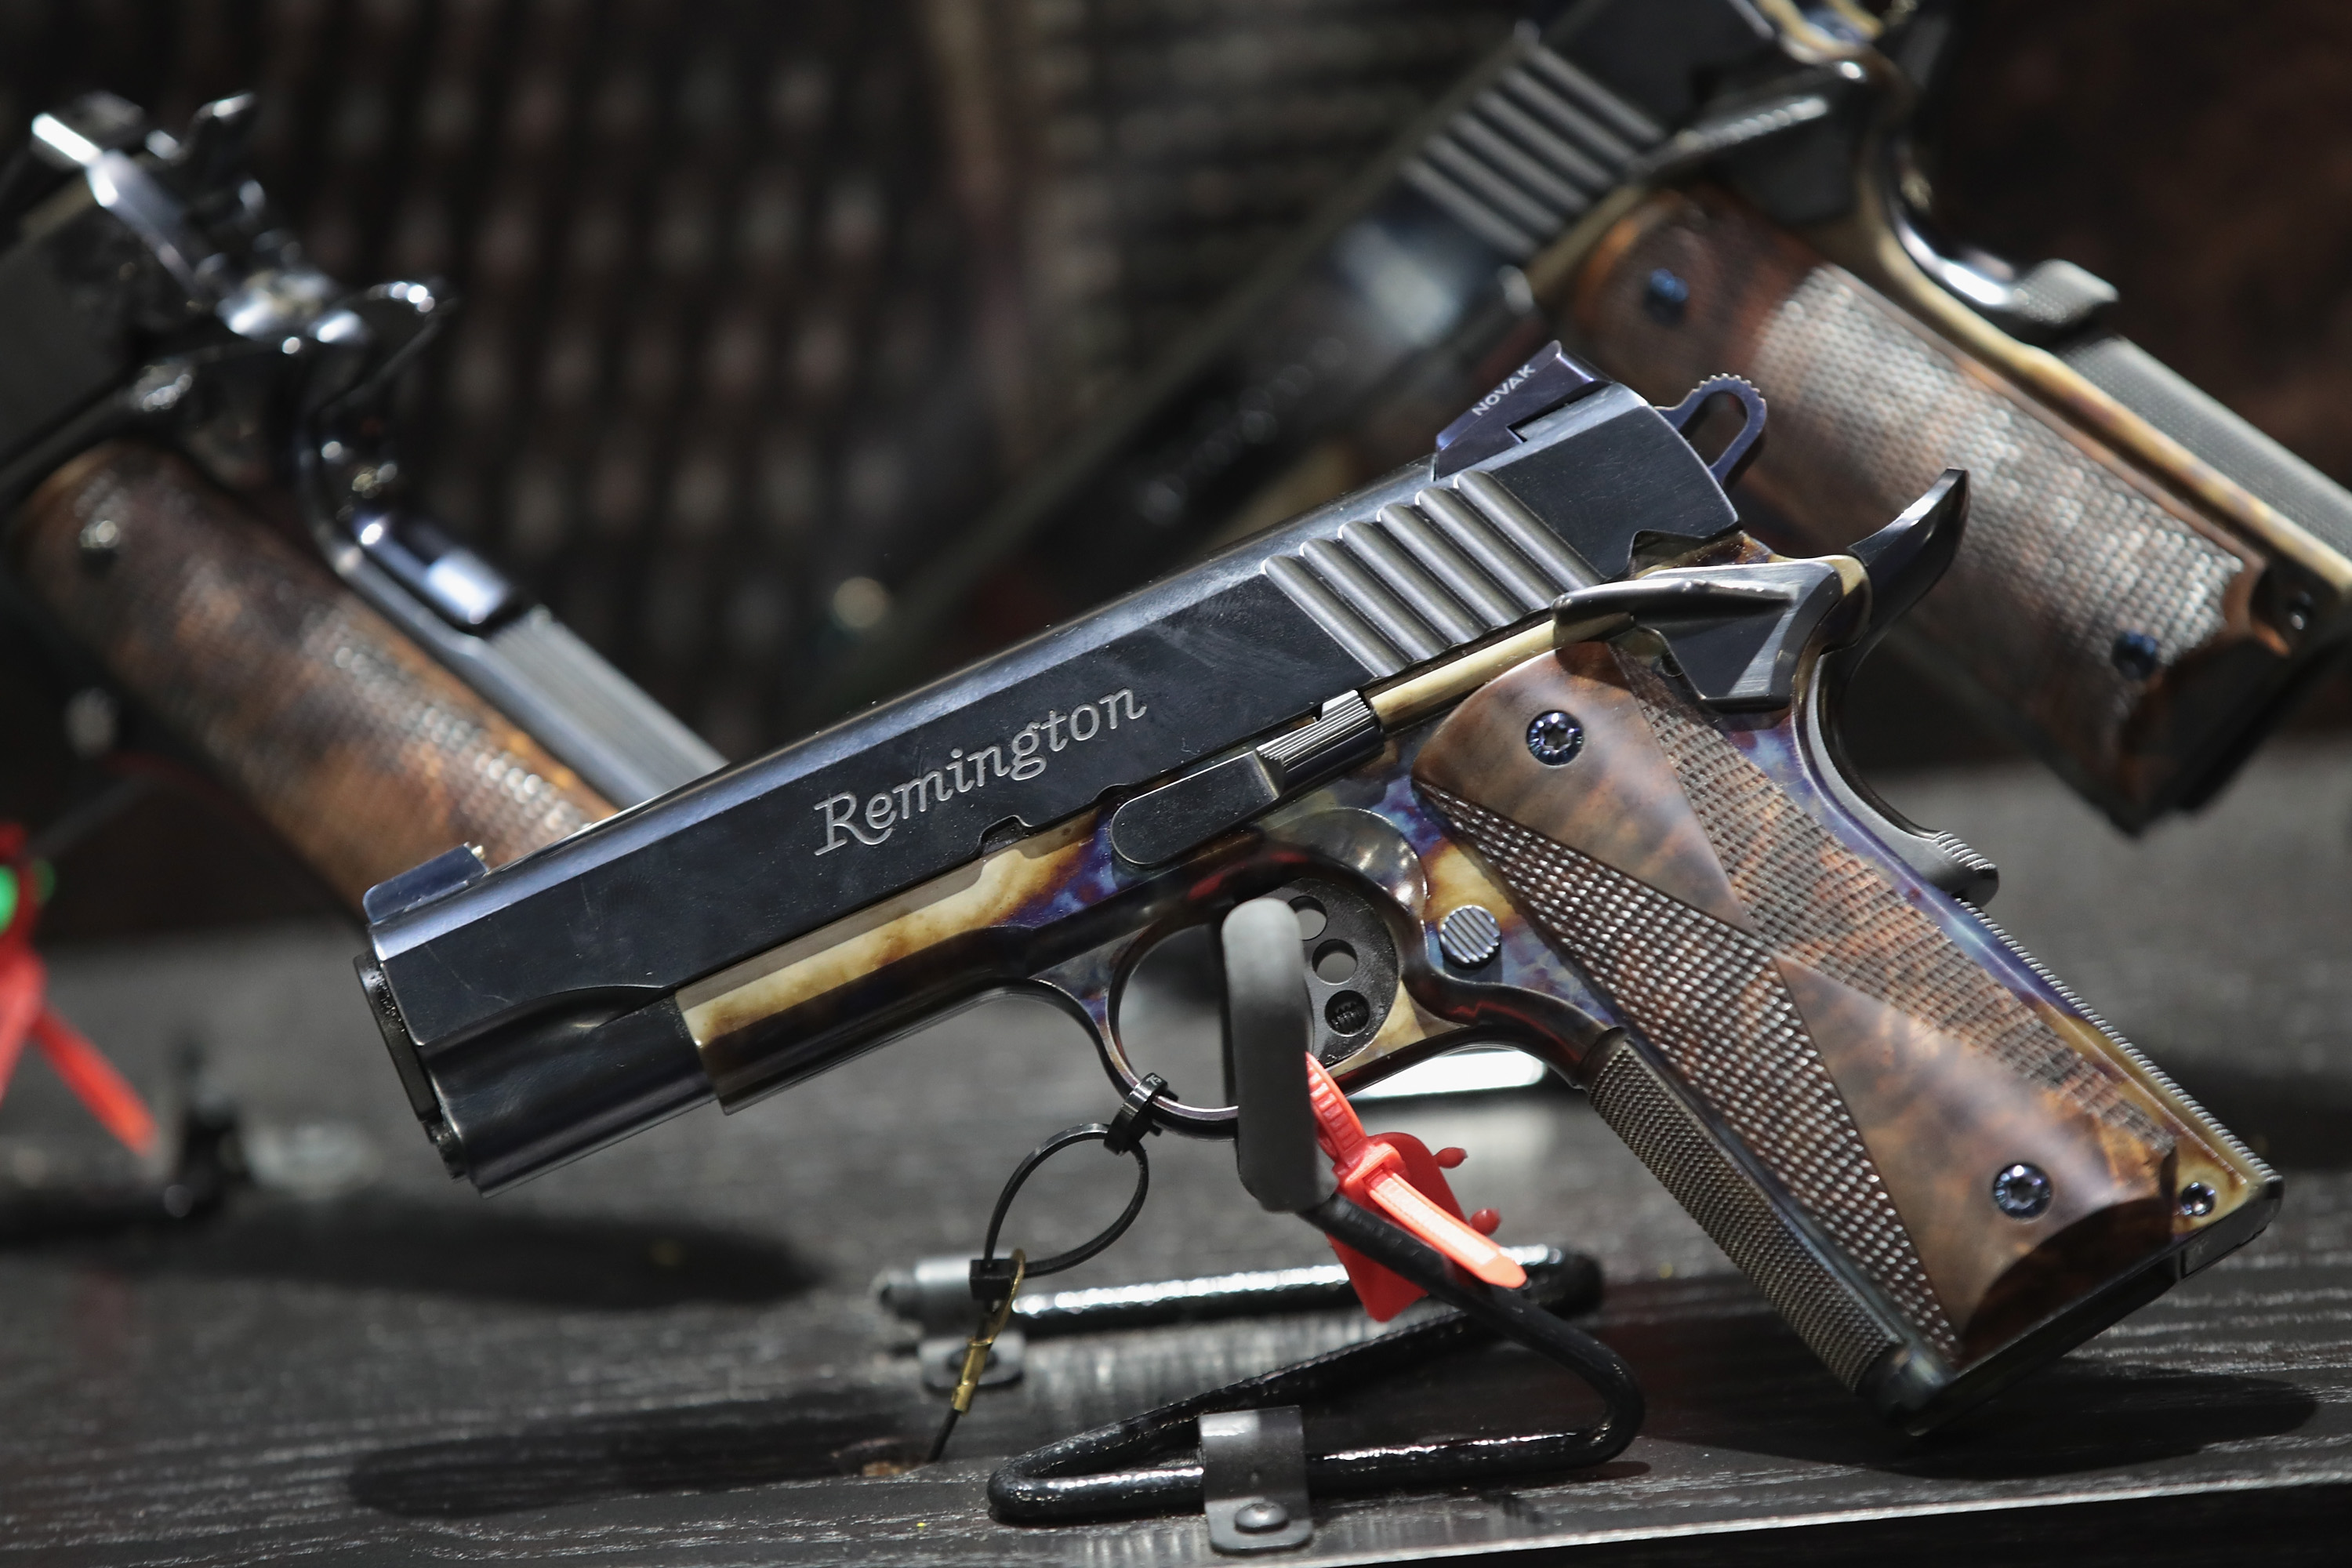 Remington-Gun-Pistol